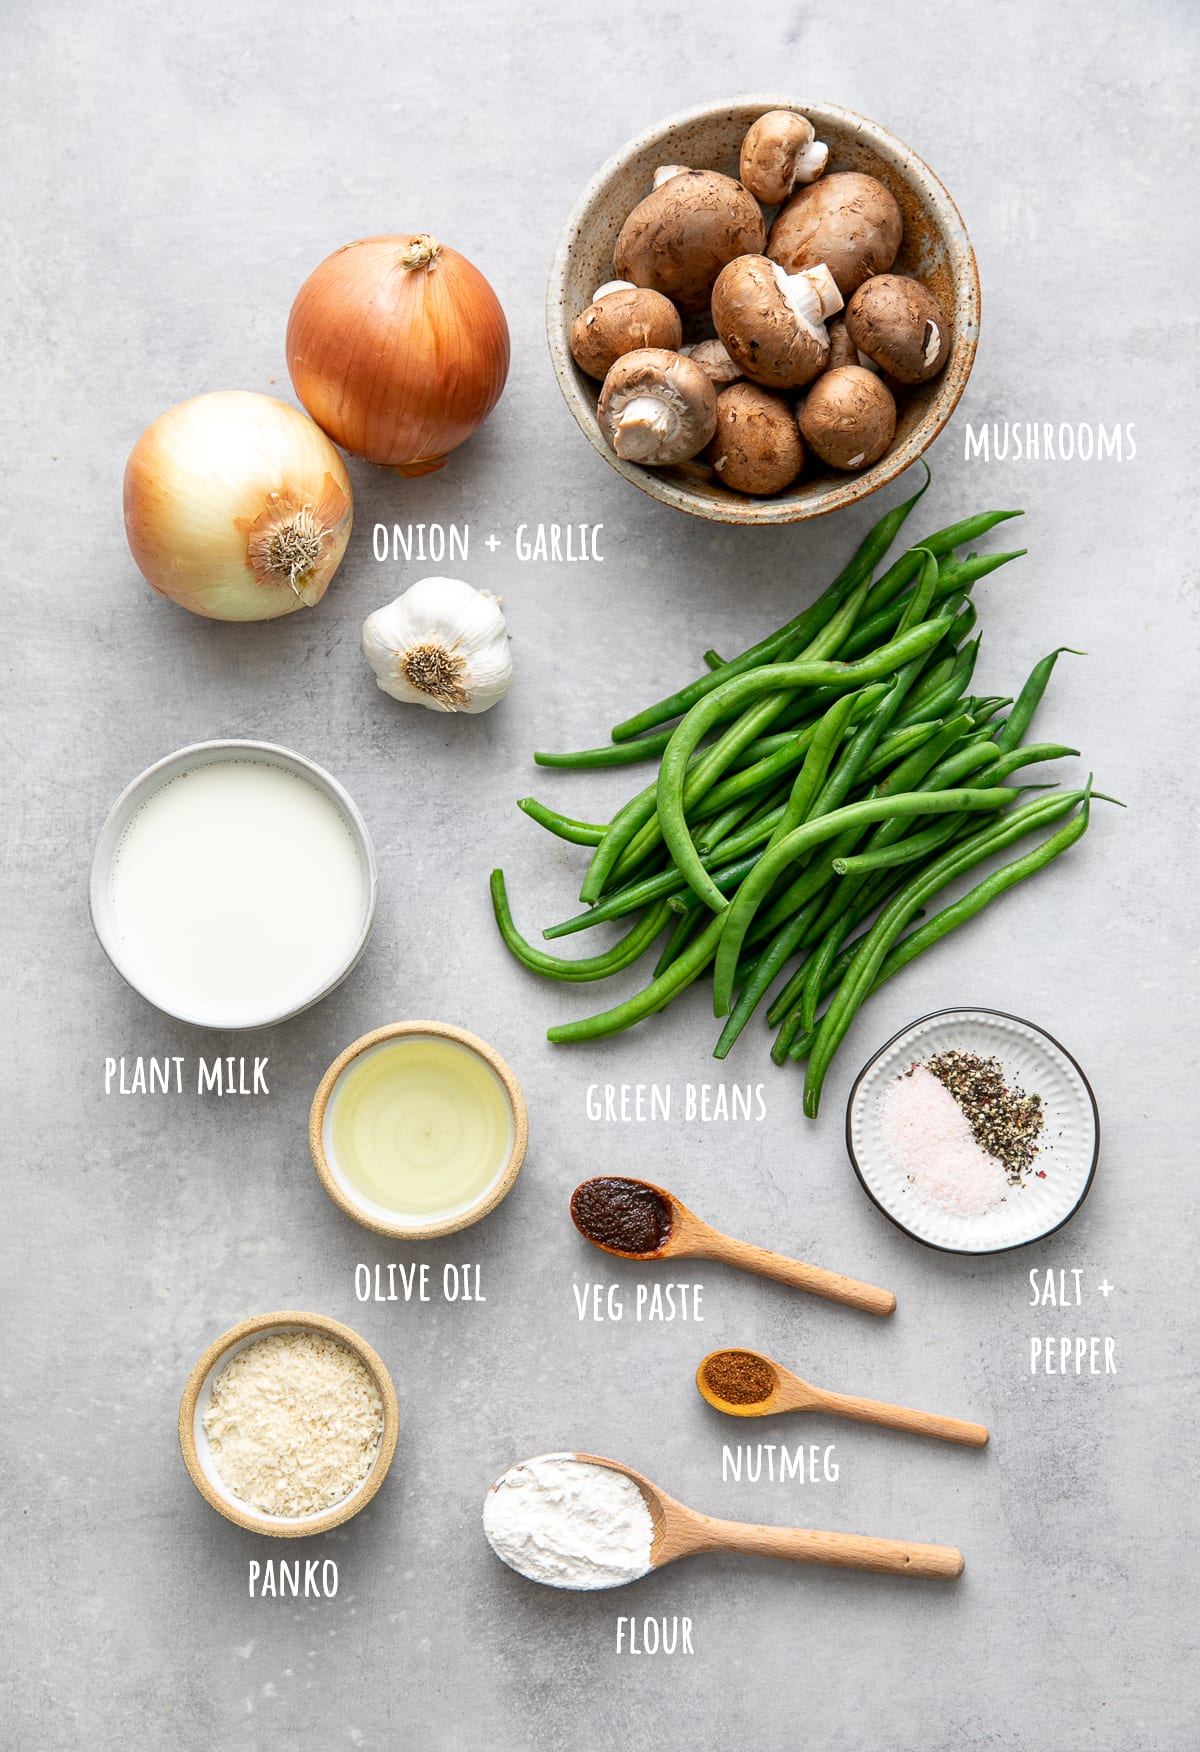 top down view of ingredients used to make healthy vegan green bean casserole.